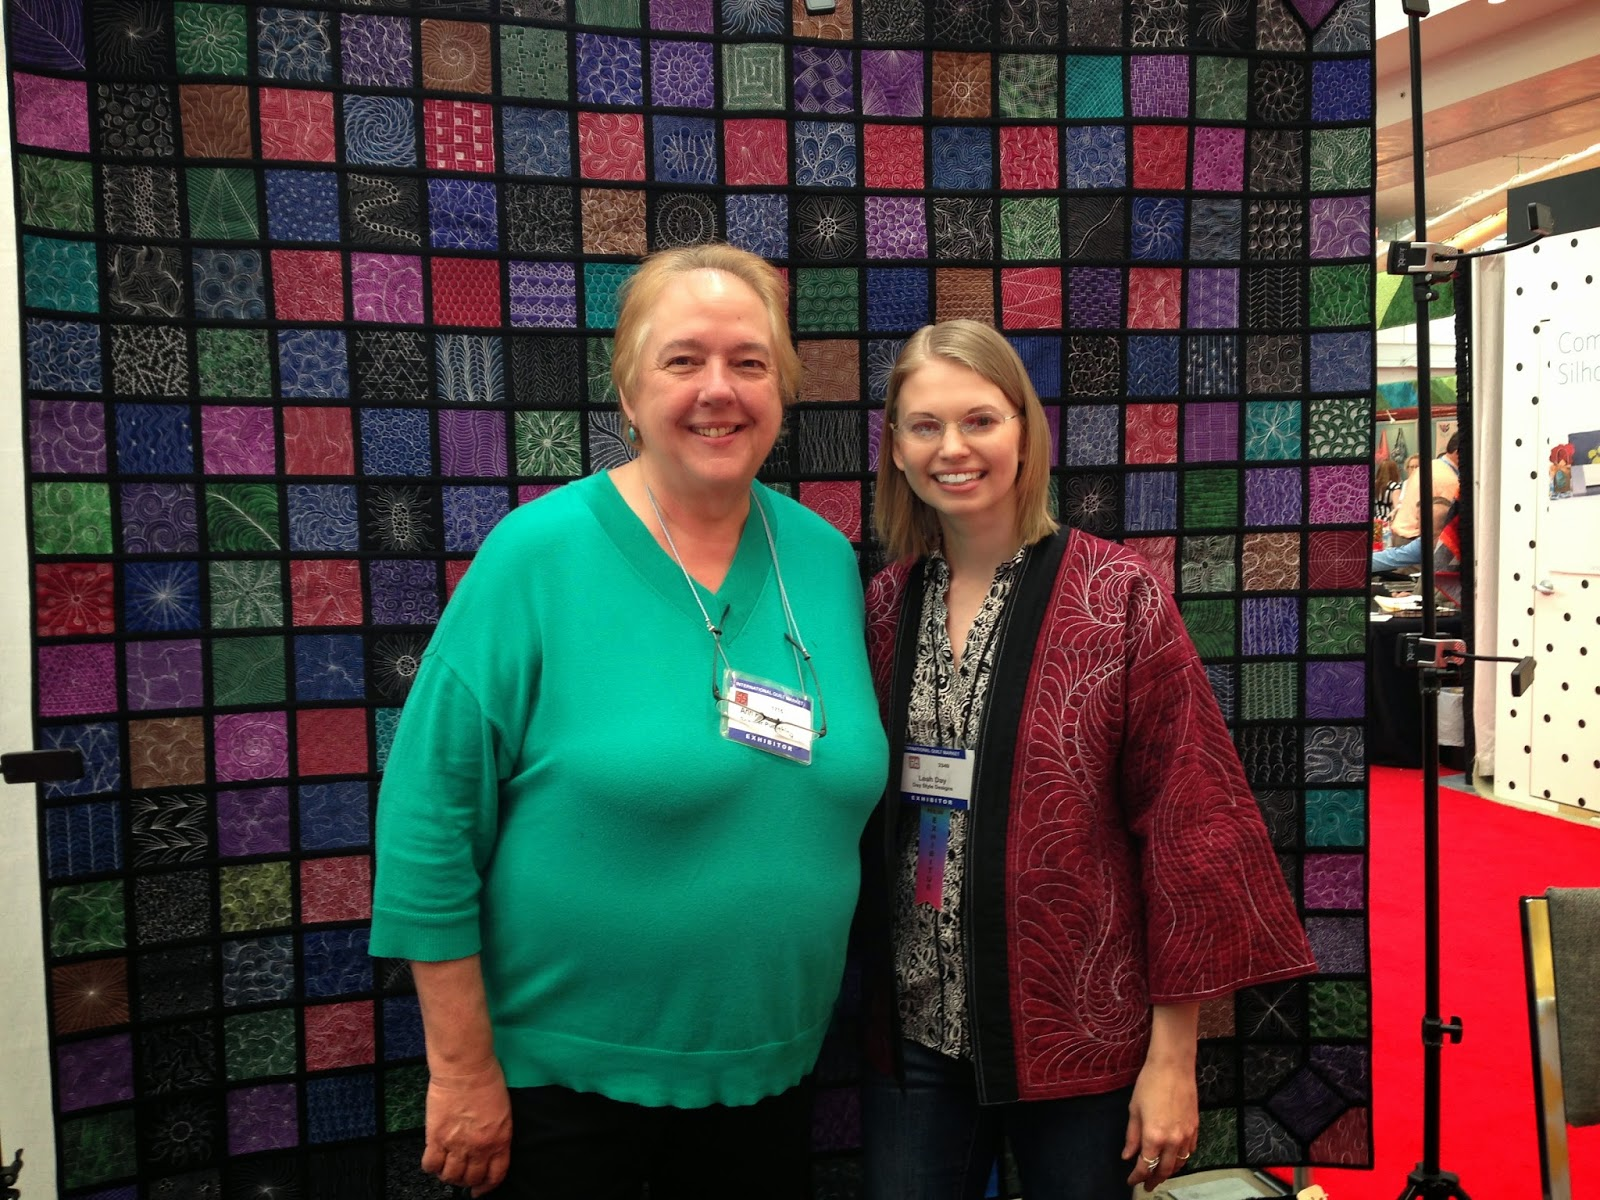 http://annholtequilting.com/